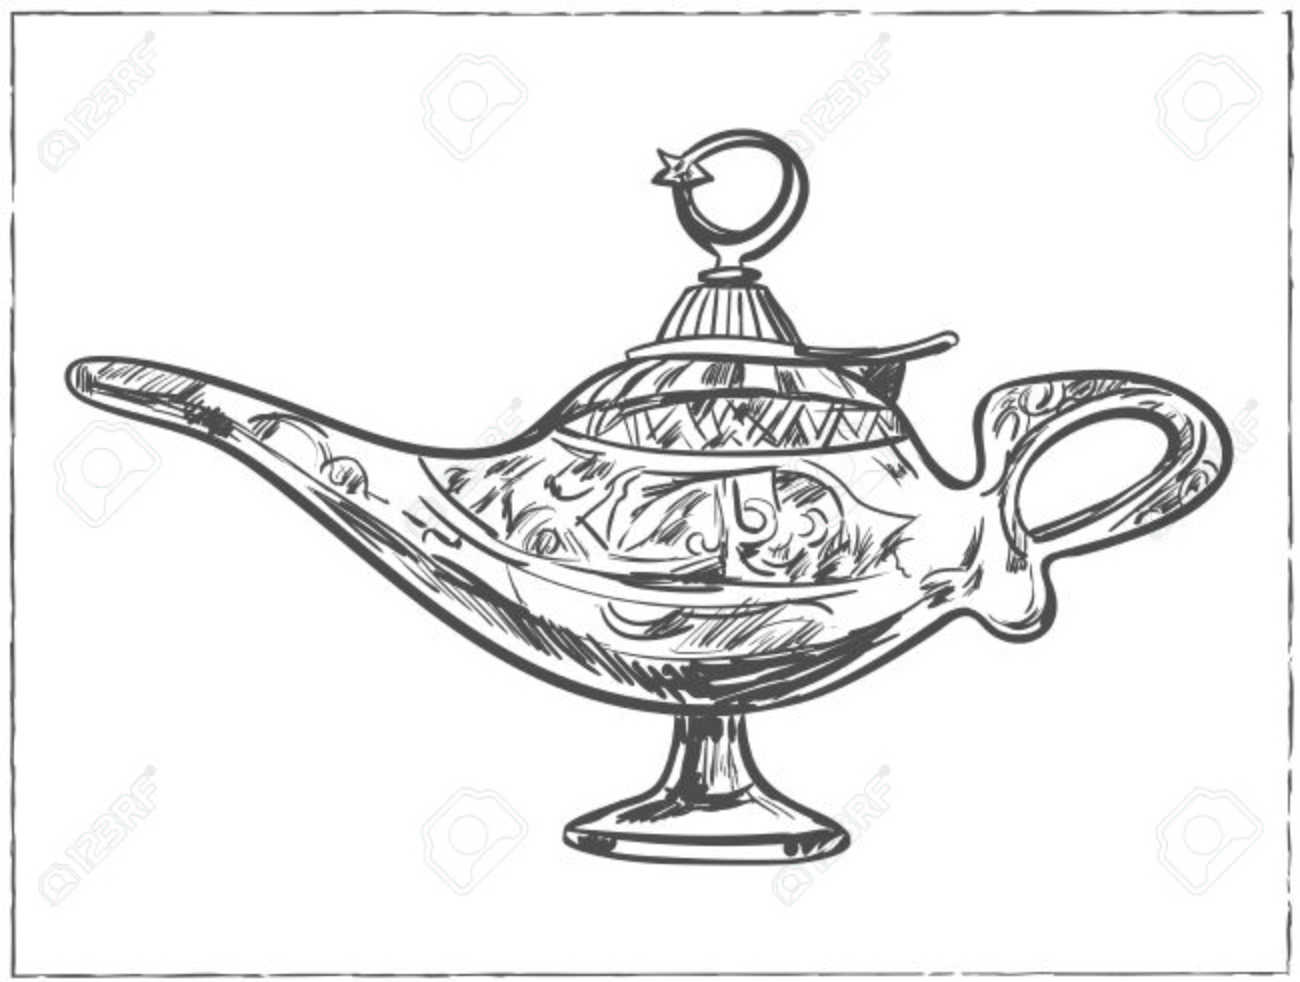 Magic Arabic Lamp For Holy Month Of Muslim Community, Ramadan ... for Ramadan Lamp Drawing  110zmd